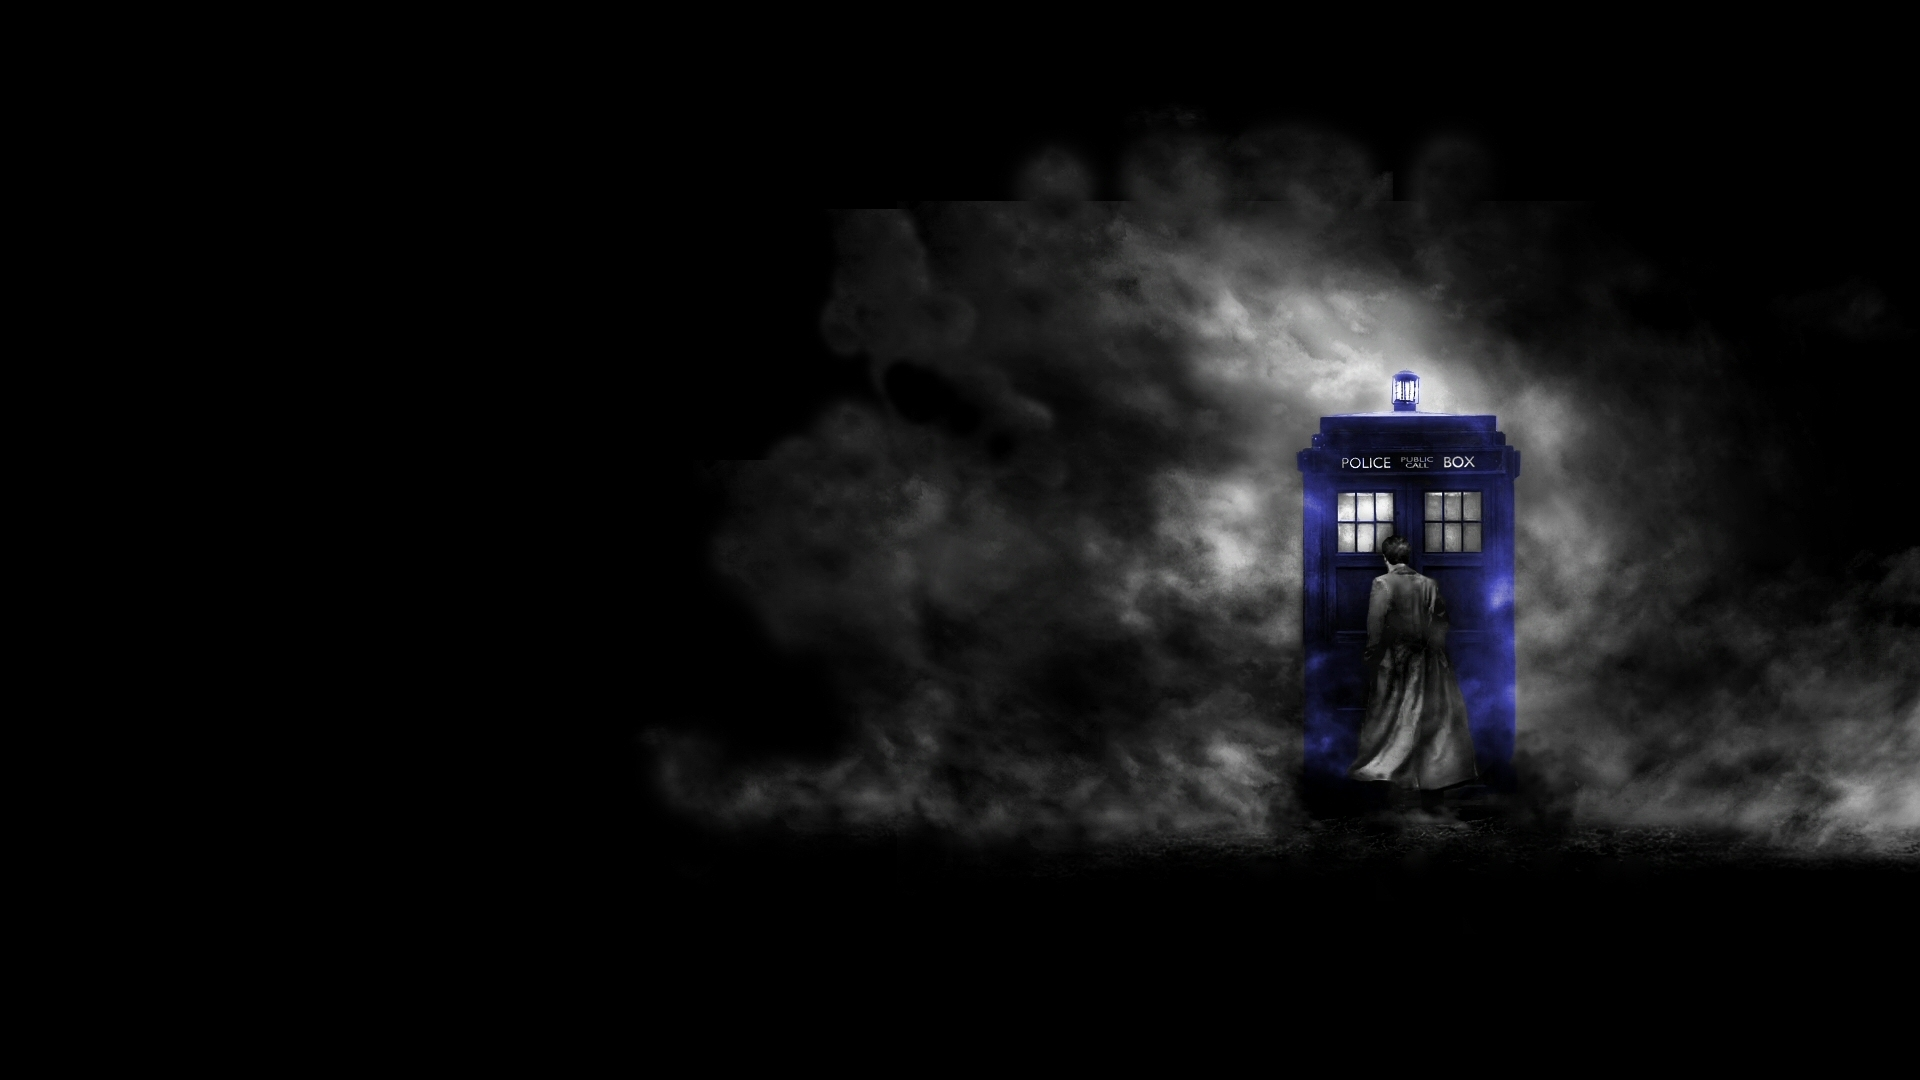 high definition collection: doctor who wallpapers, 40 full hd doctor